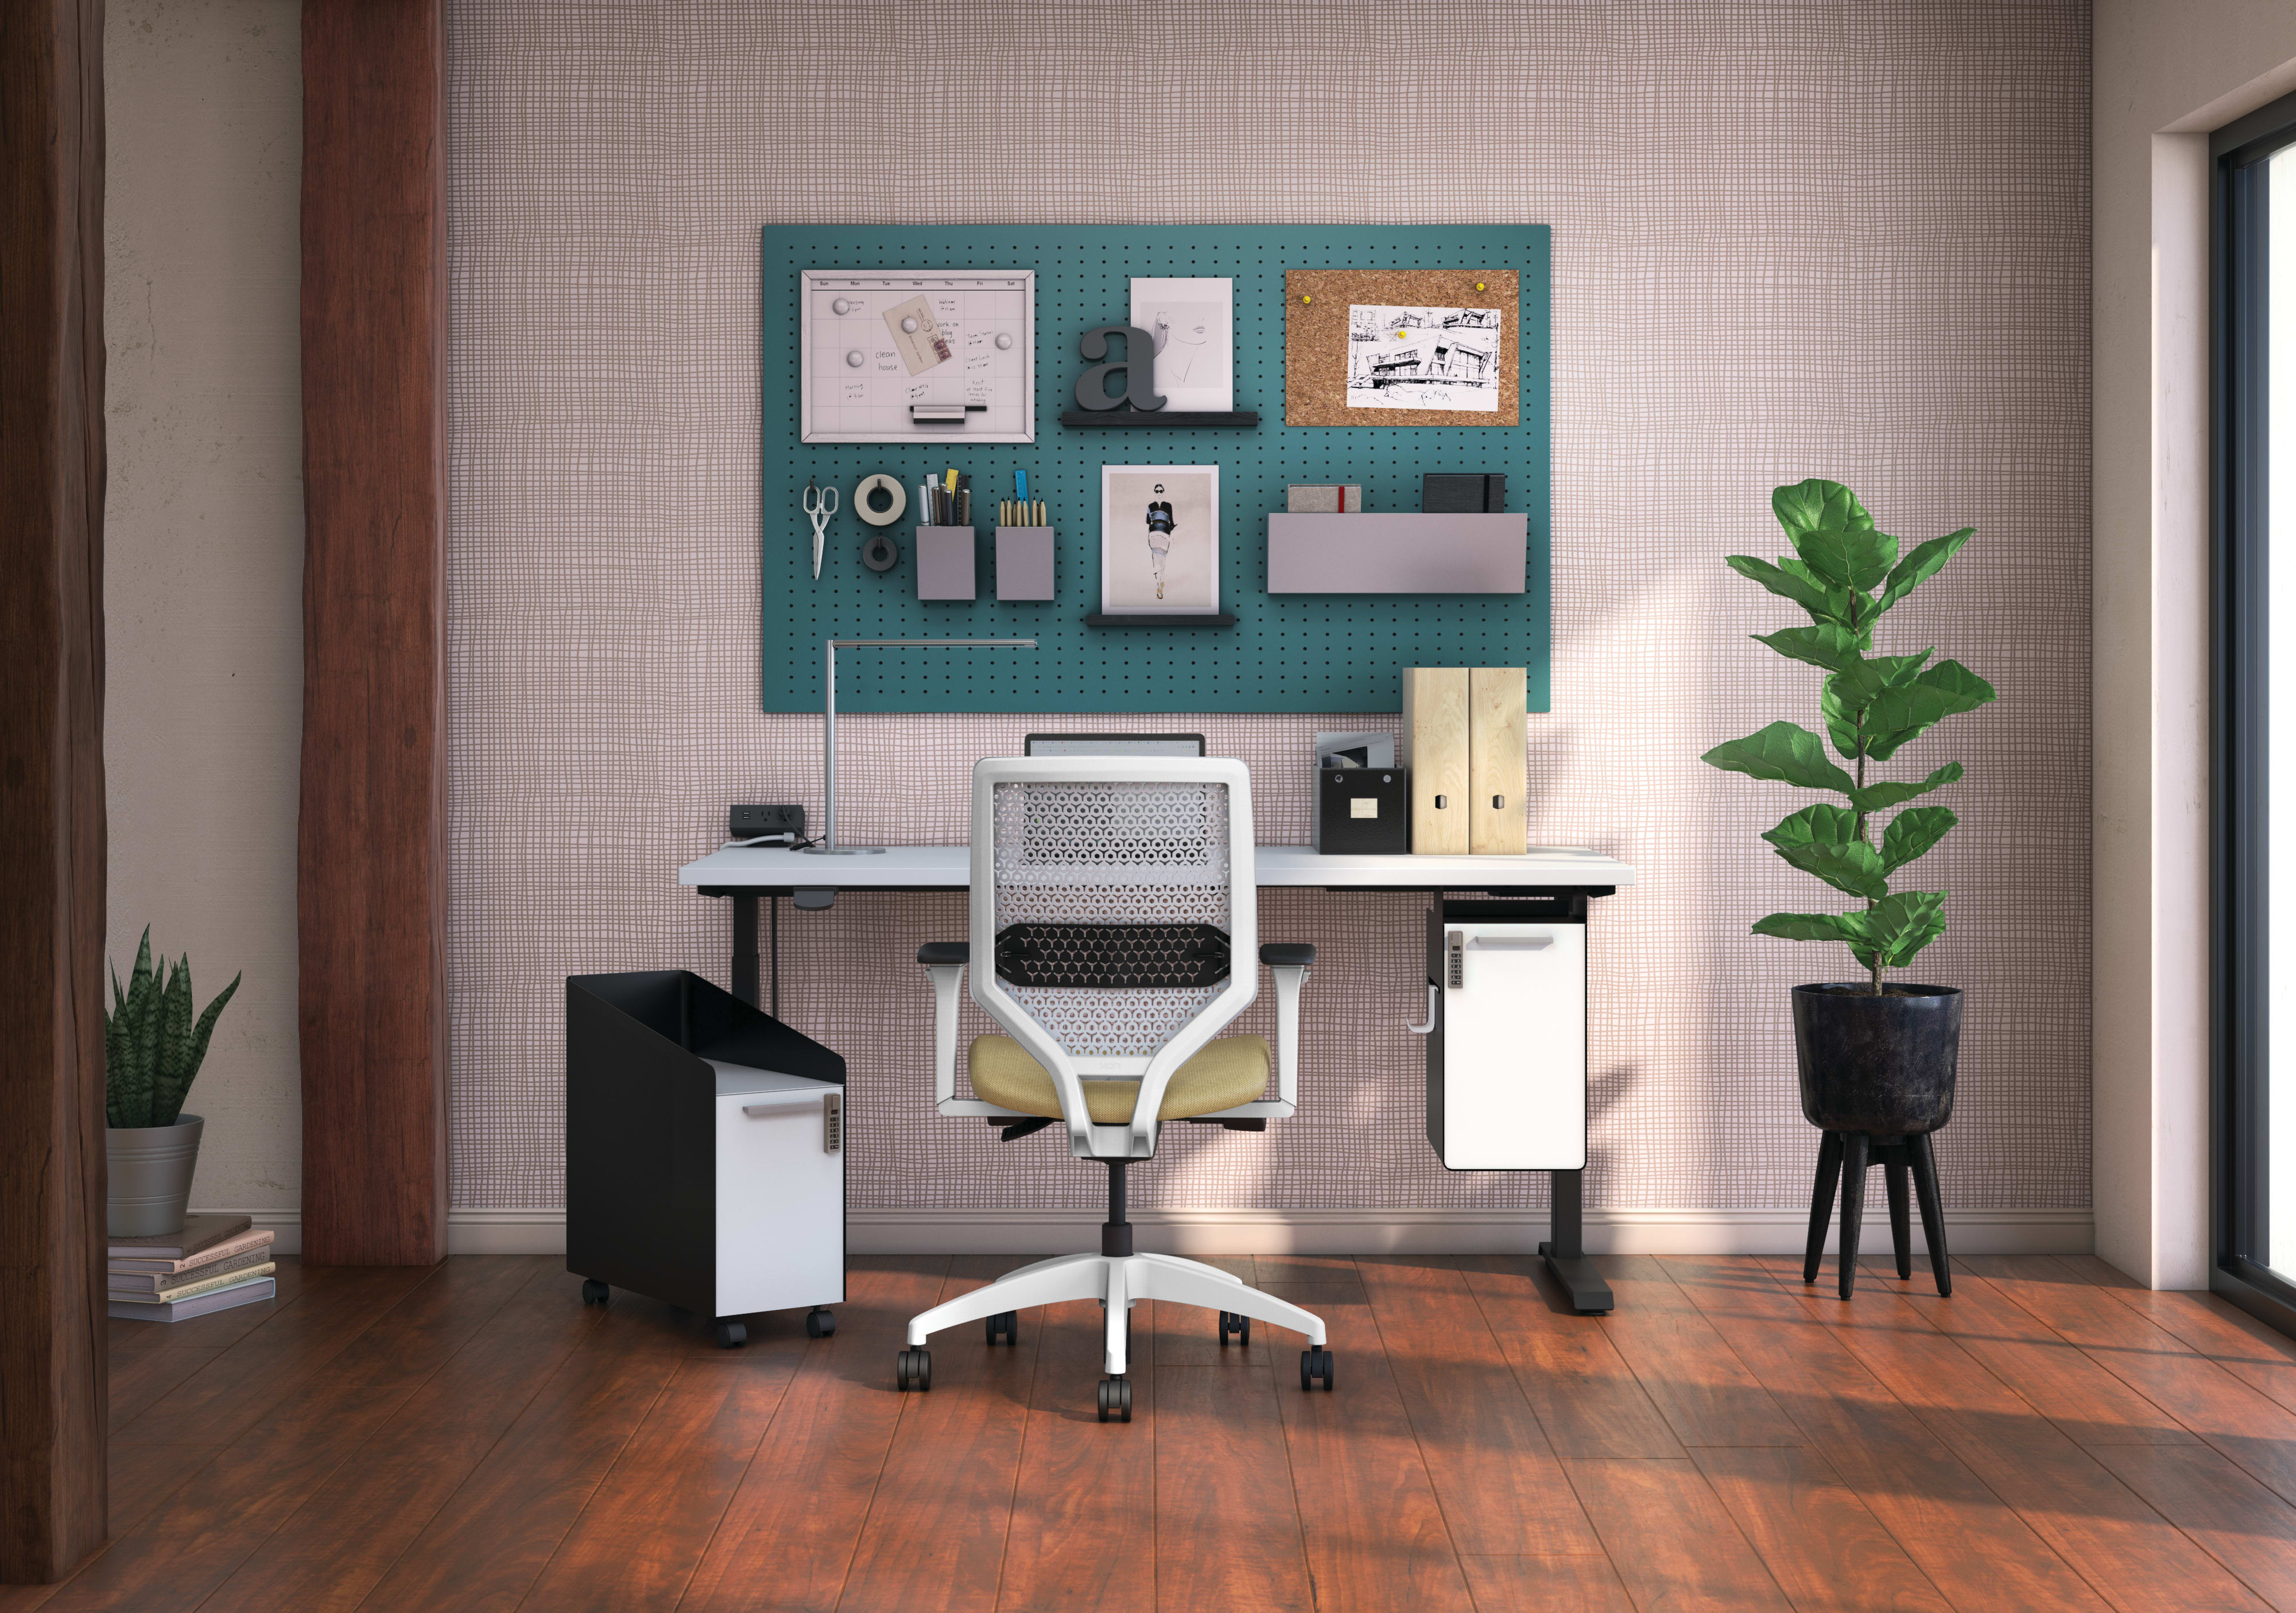 Coordinate height-adjustable desk with Solve seating and Fuse pedstals featuring digilock option.